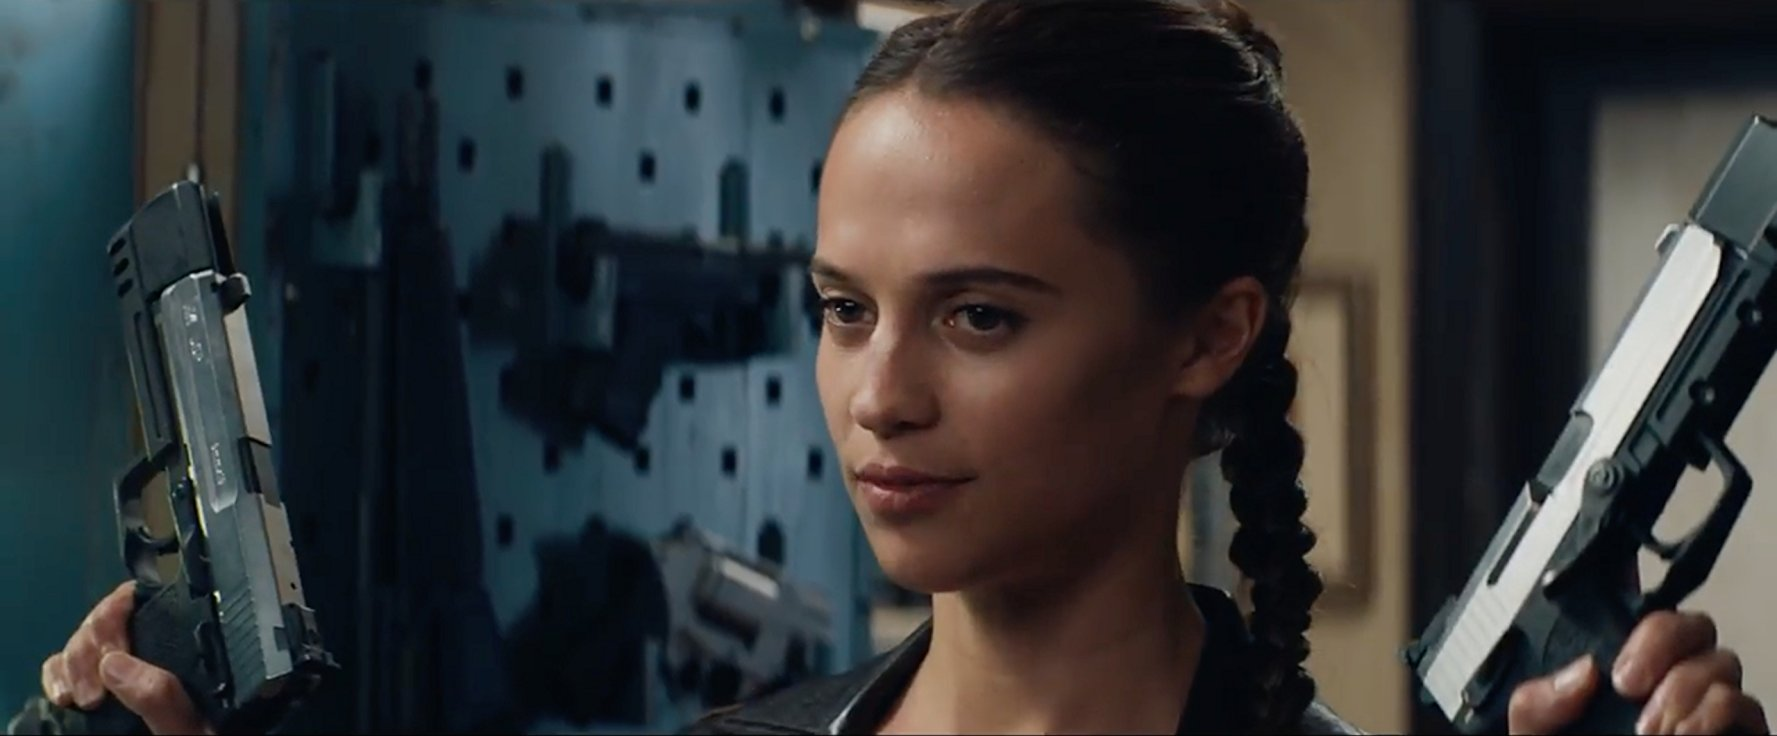 Tomb Raider, movie review, Lucas Mirabella